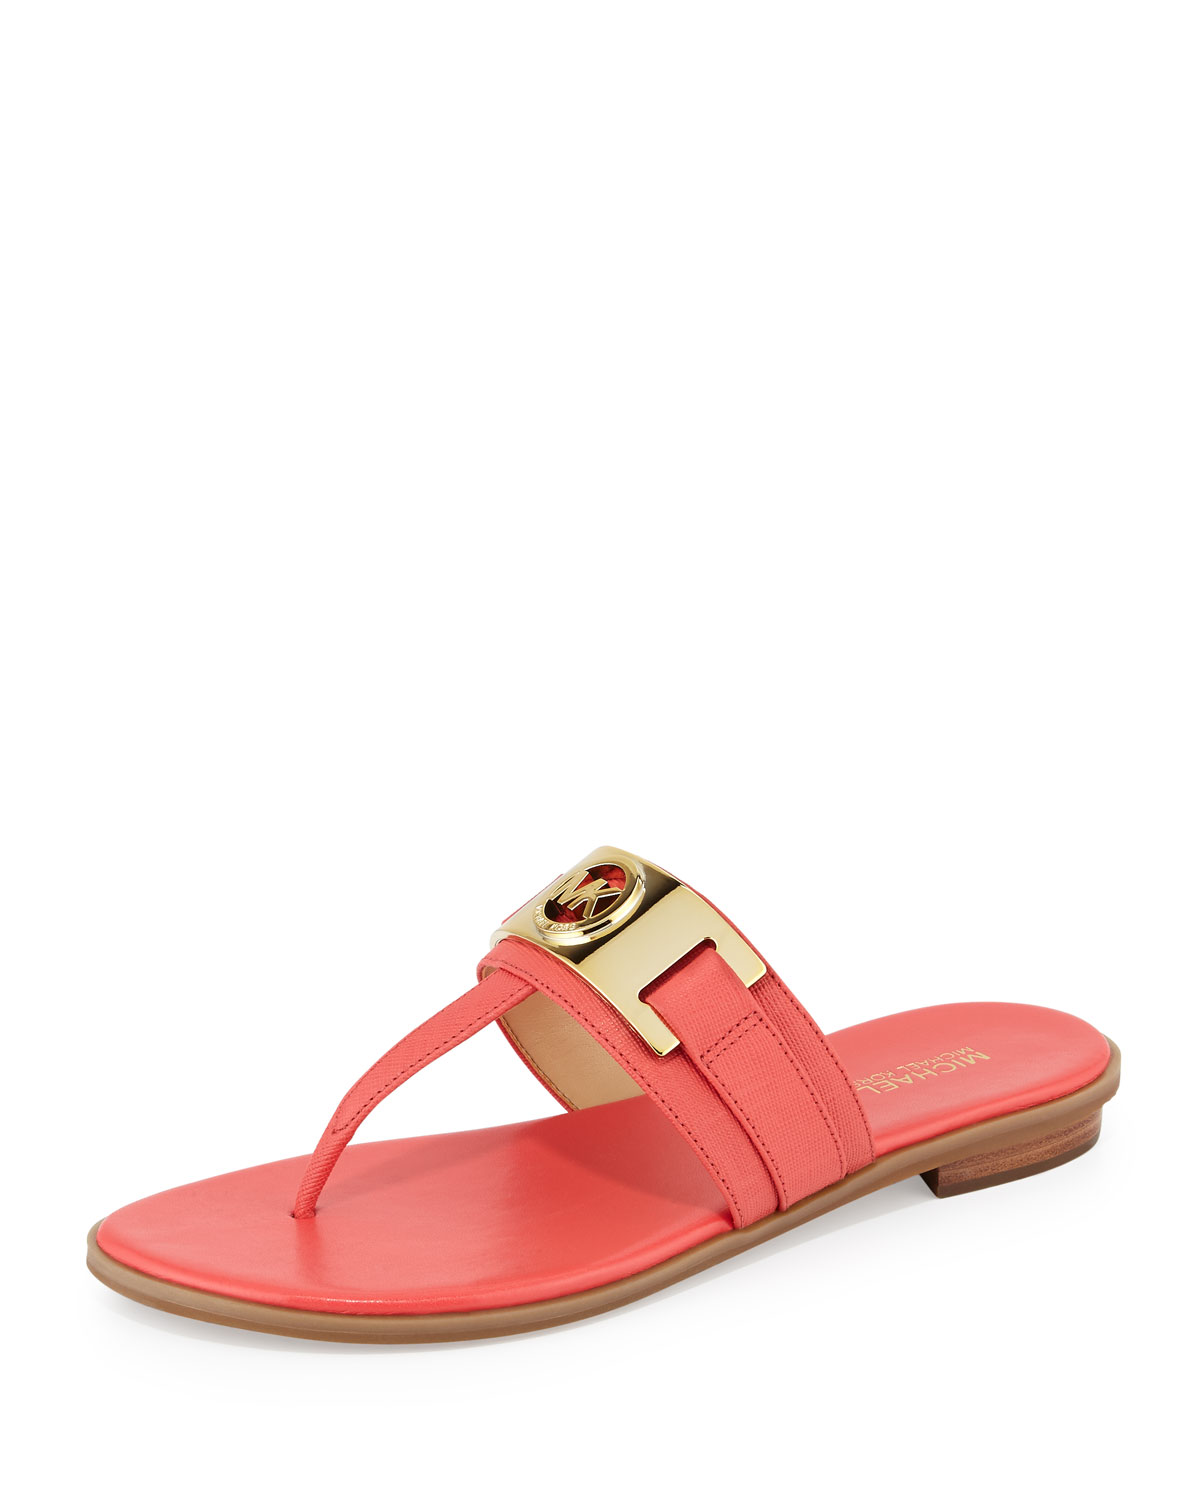 Warren Flat Saffiano Thong Sandal, Watermelon